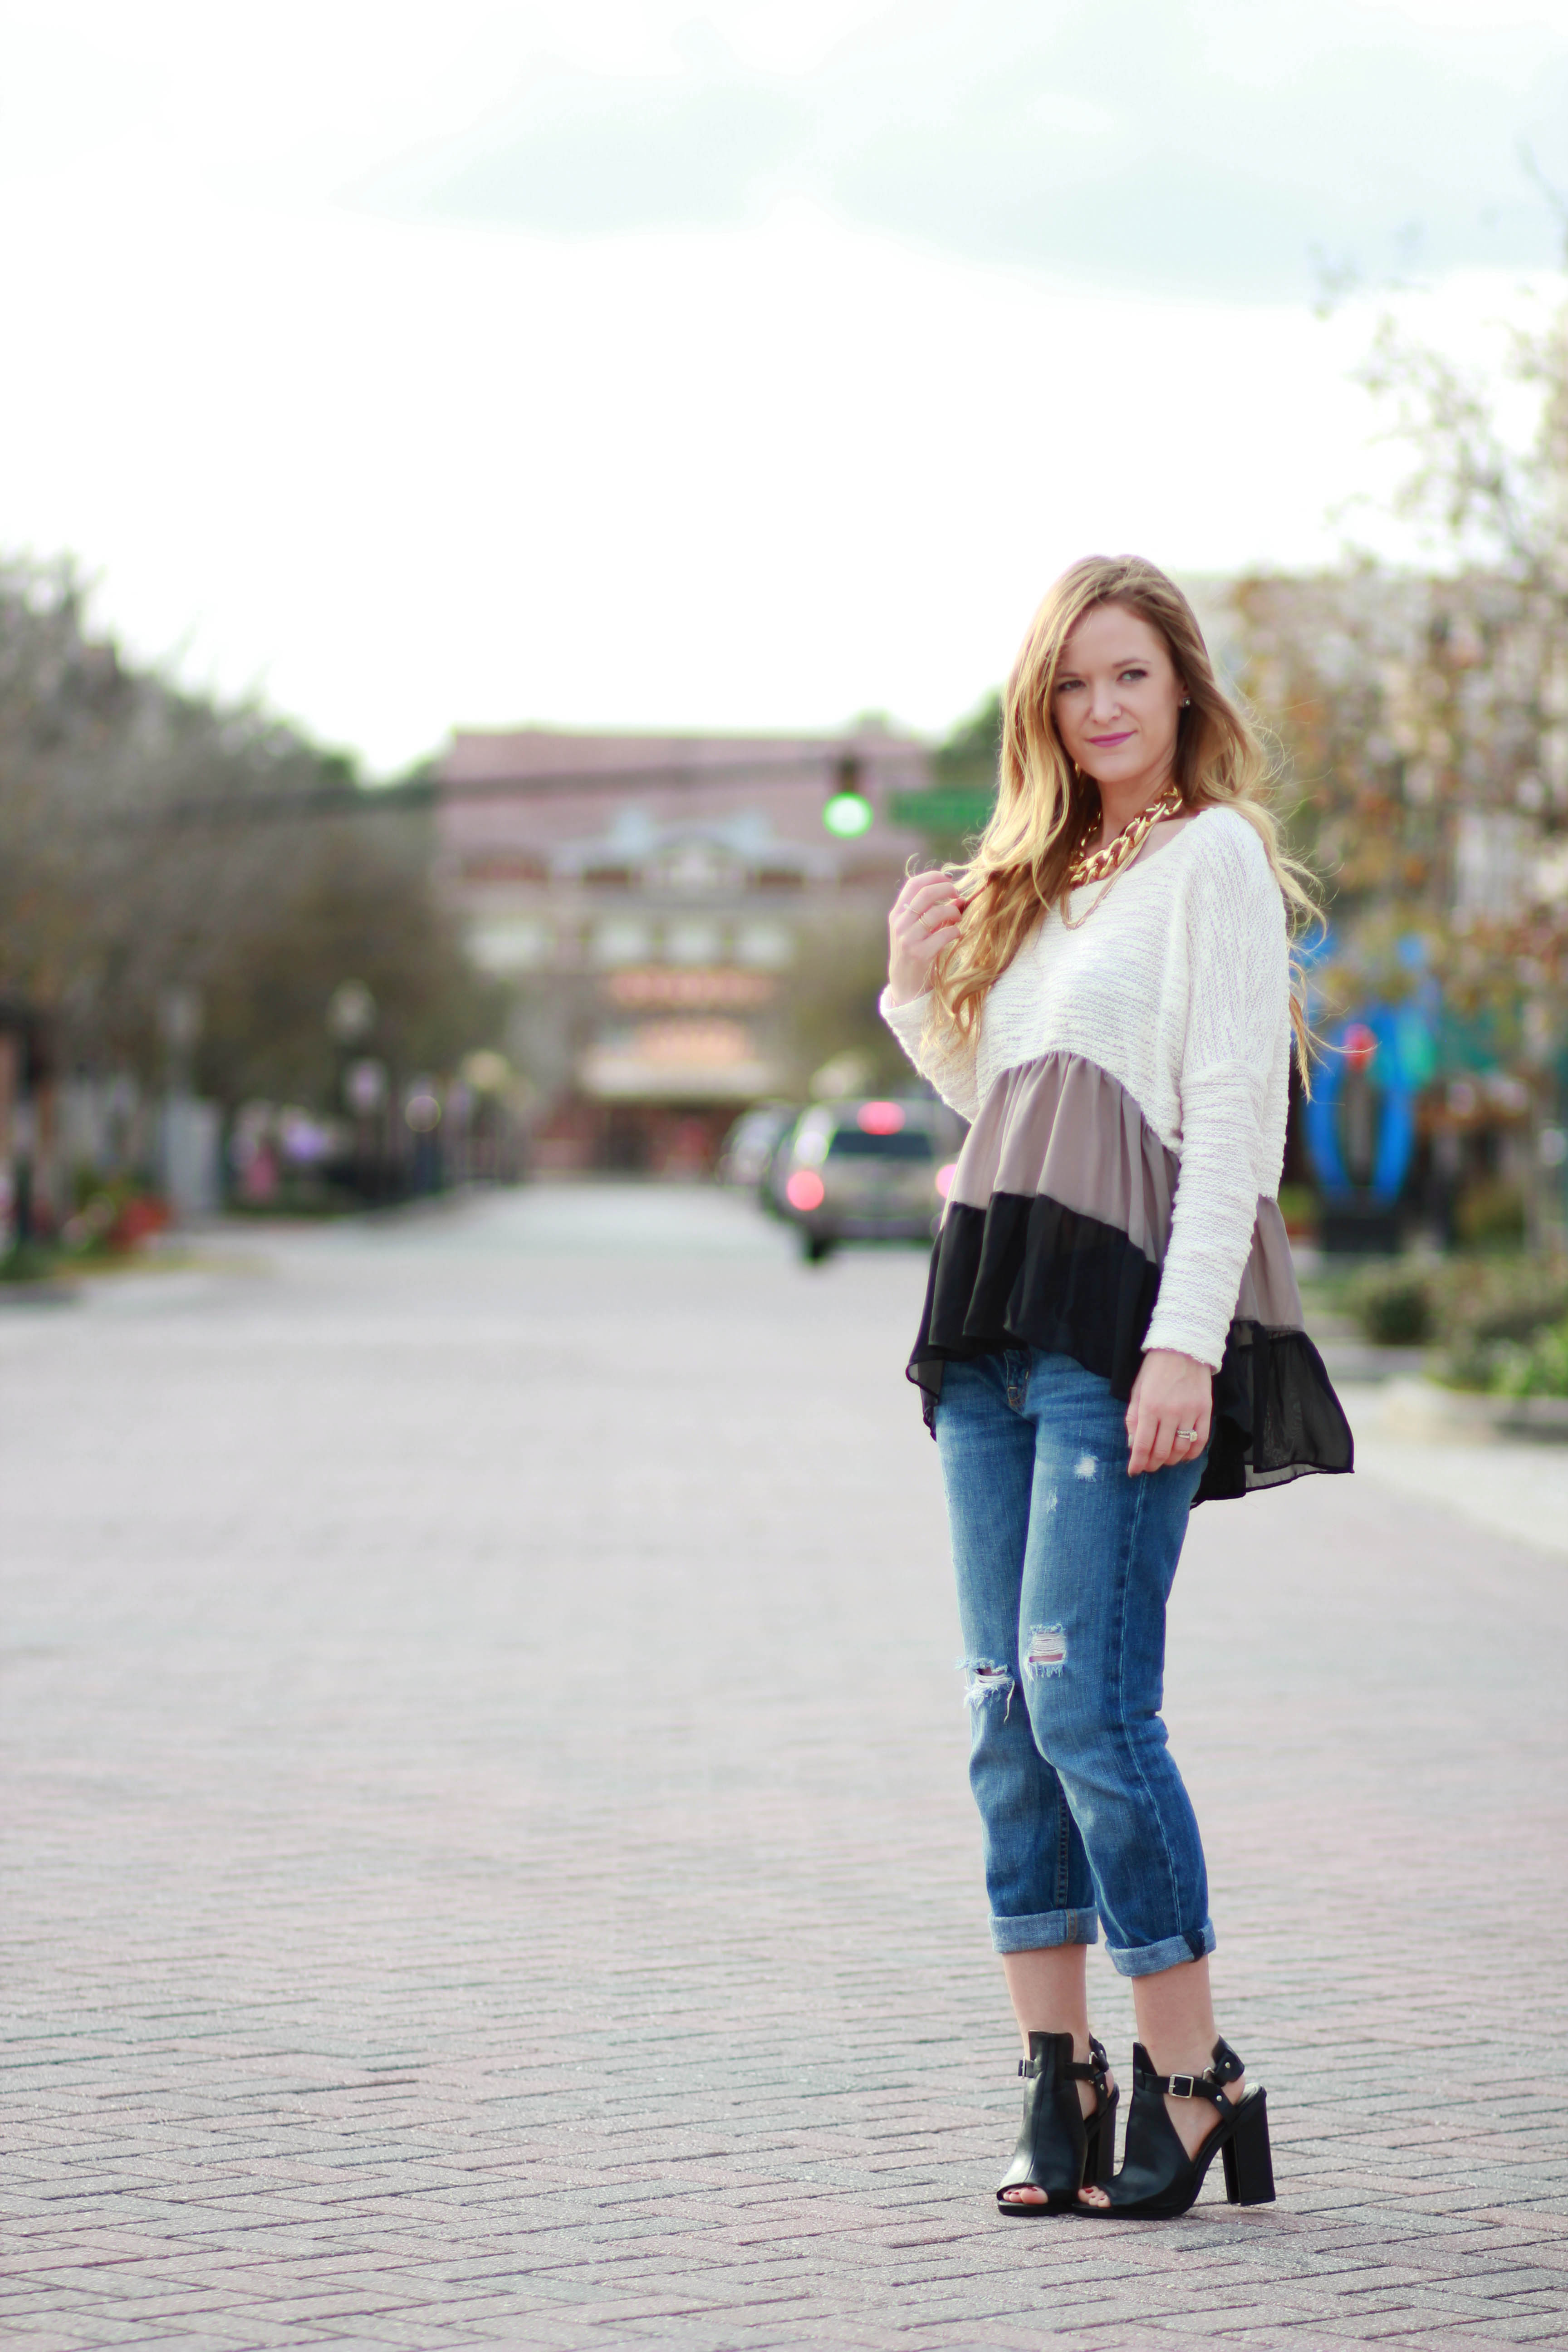 orlando, florida fashion blogger styles trunk up ruffled sweater with american eagle boyfriend jeans and windsor booties for a casual winter outfit